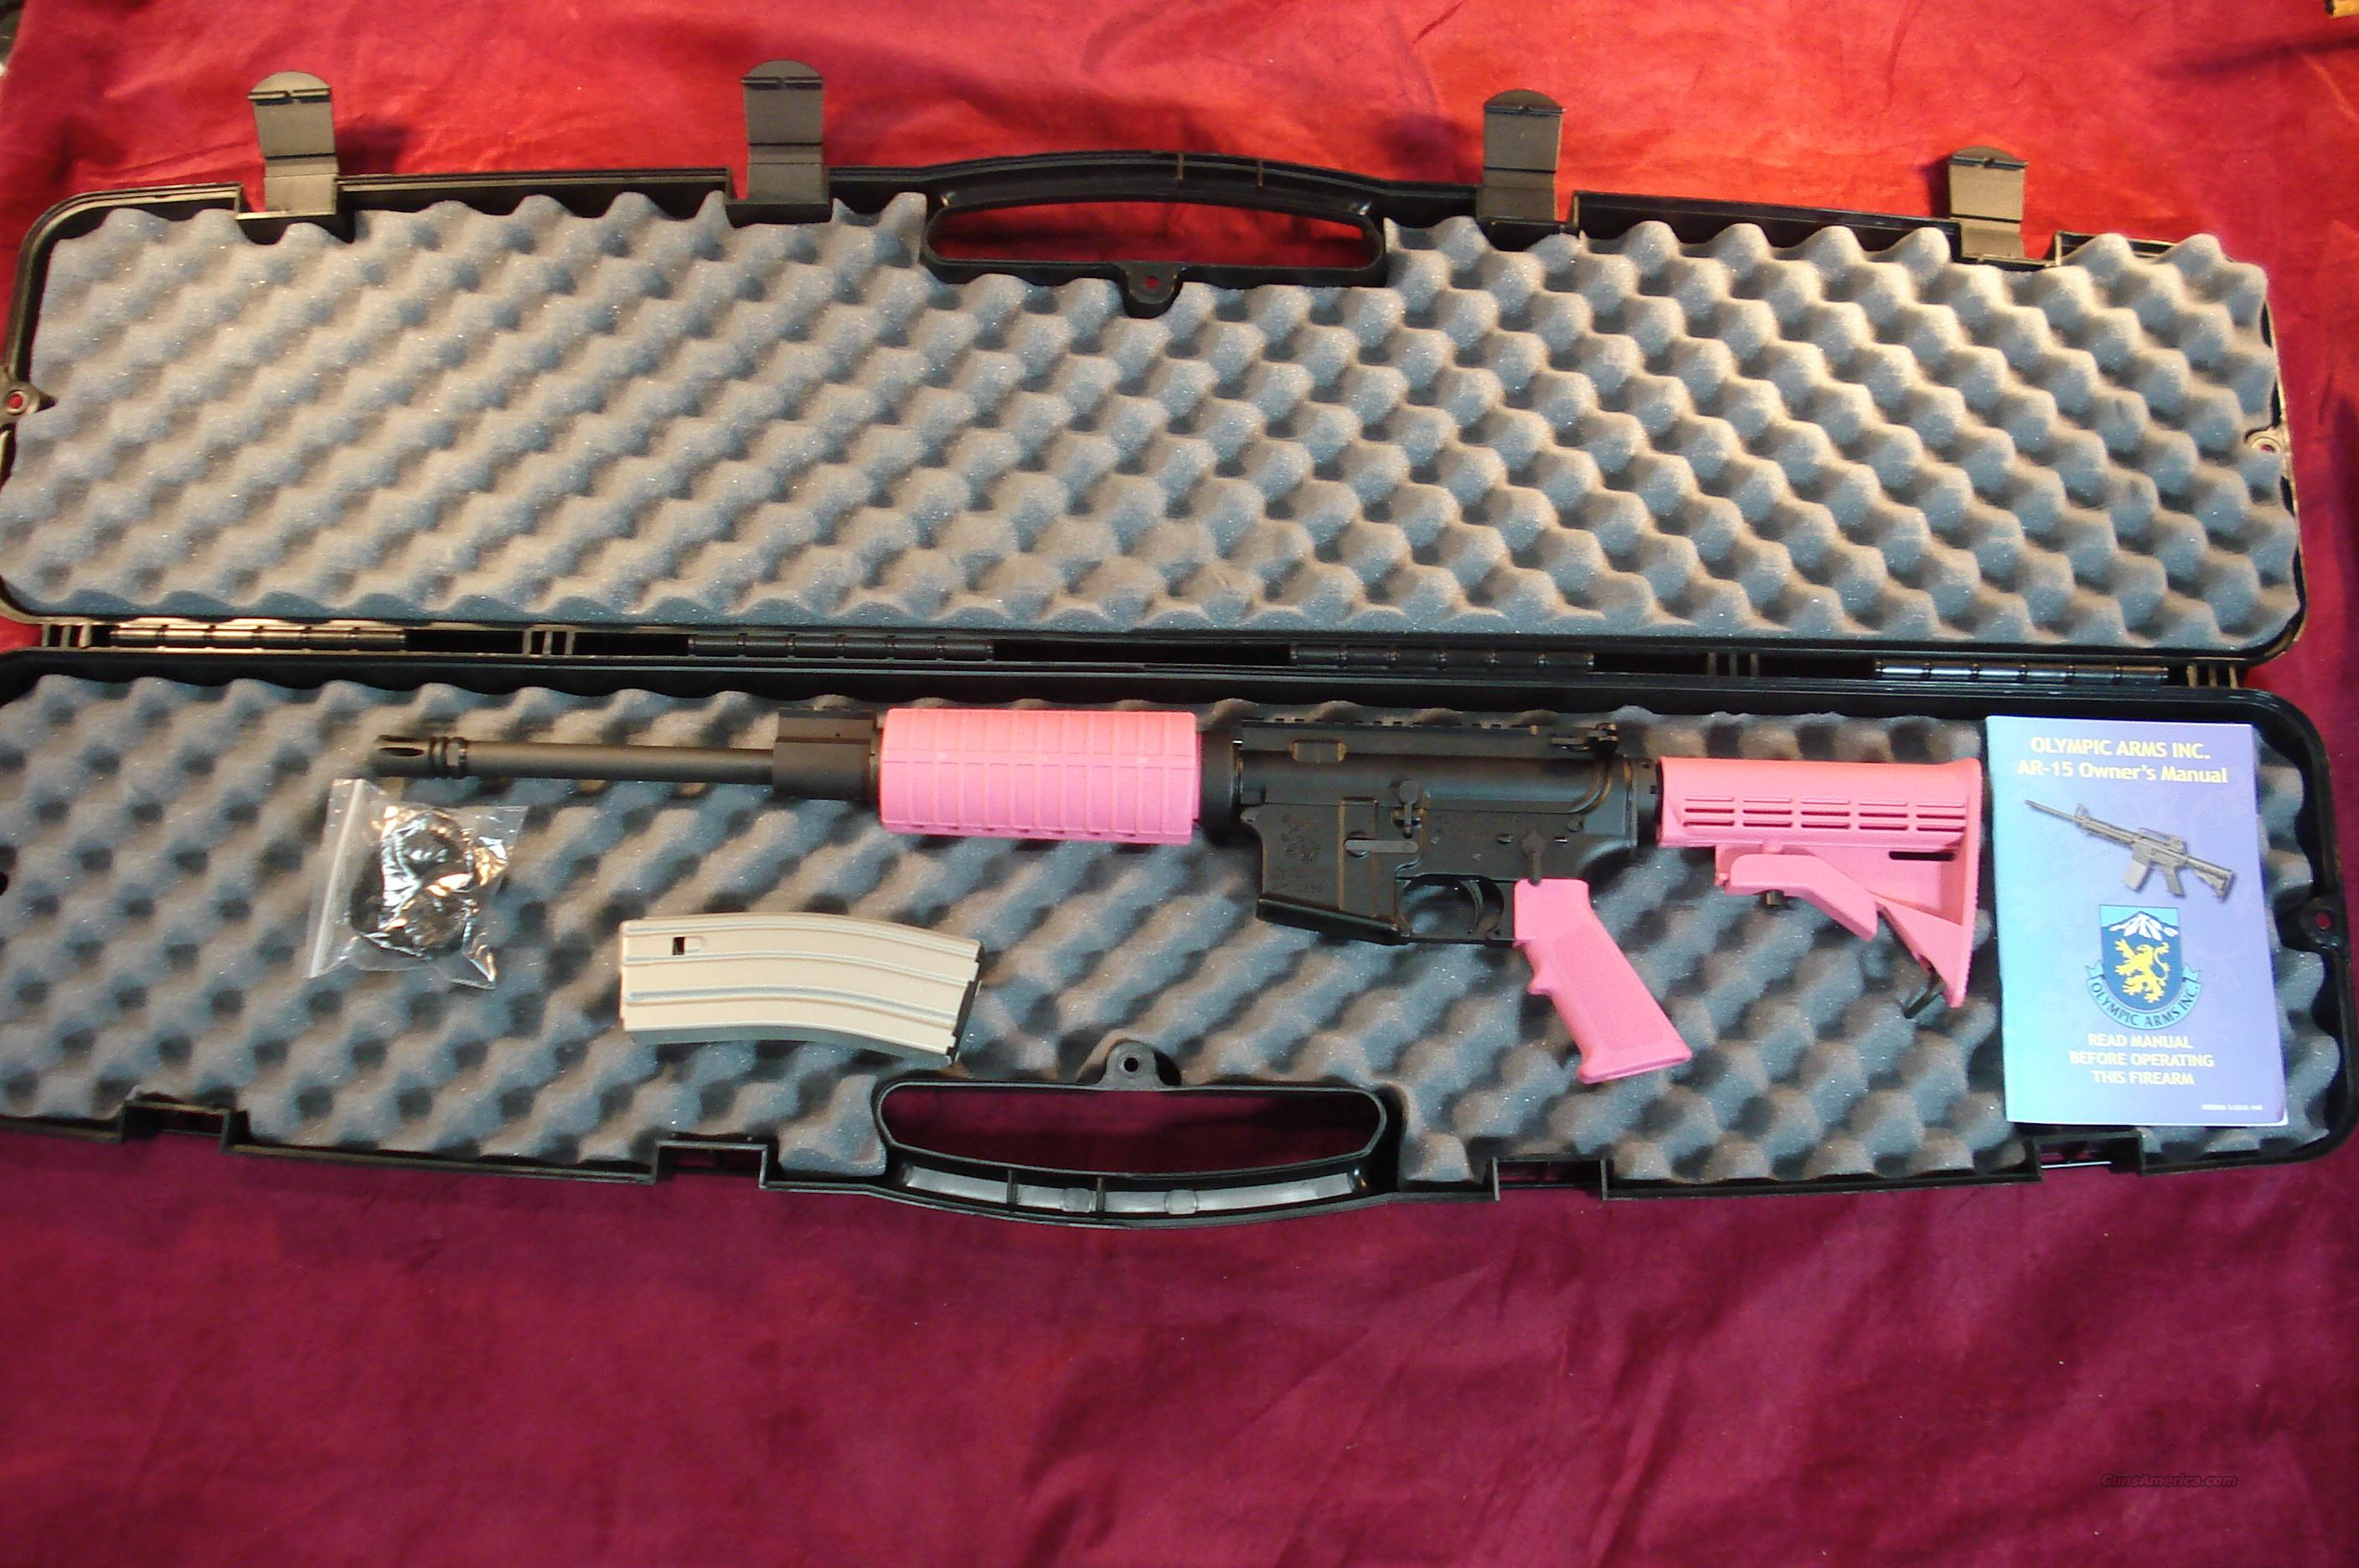 OLYMPIC ARMS PLINKER PLUS PINK AR15 223 CAL NEW  Guns > Rifles > Olympic Arms Rifles